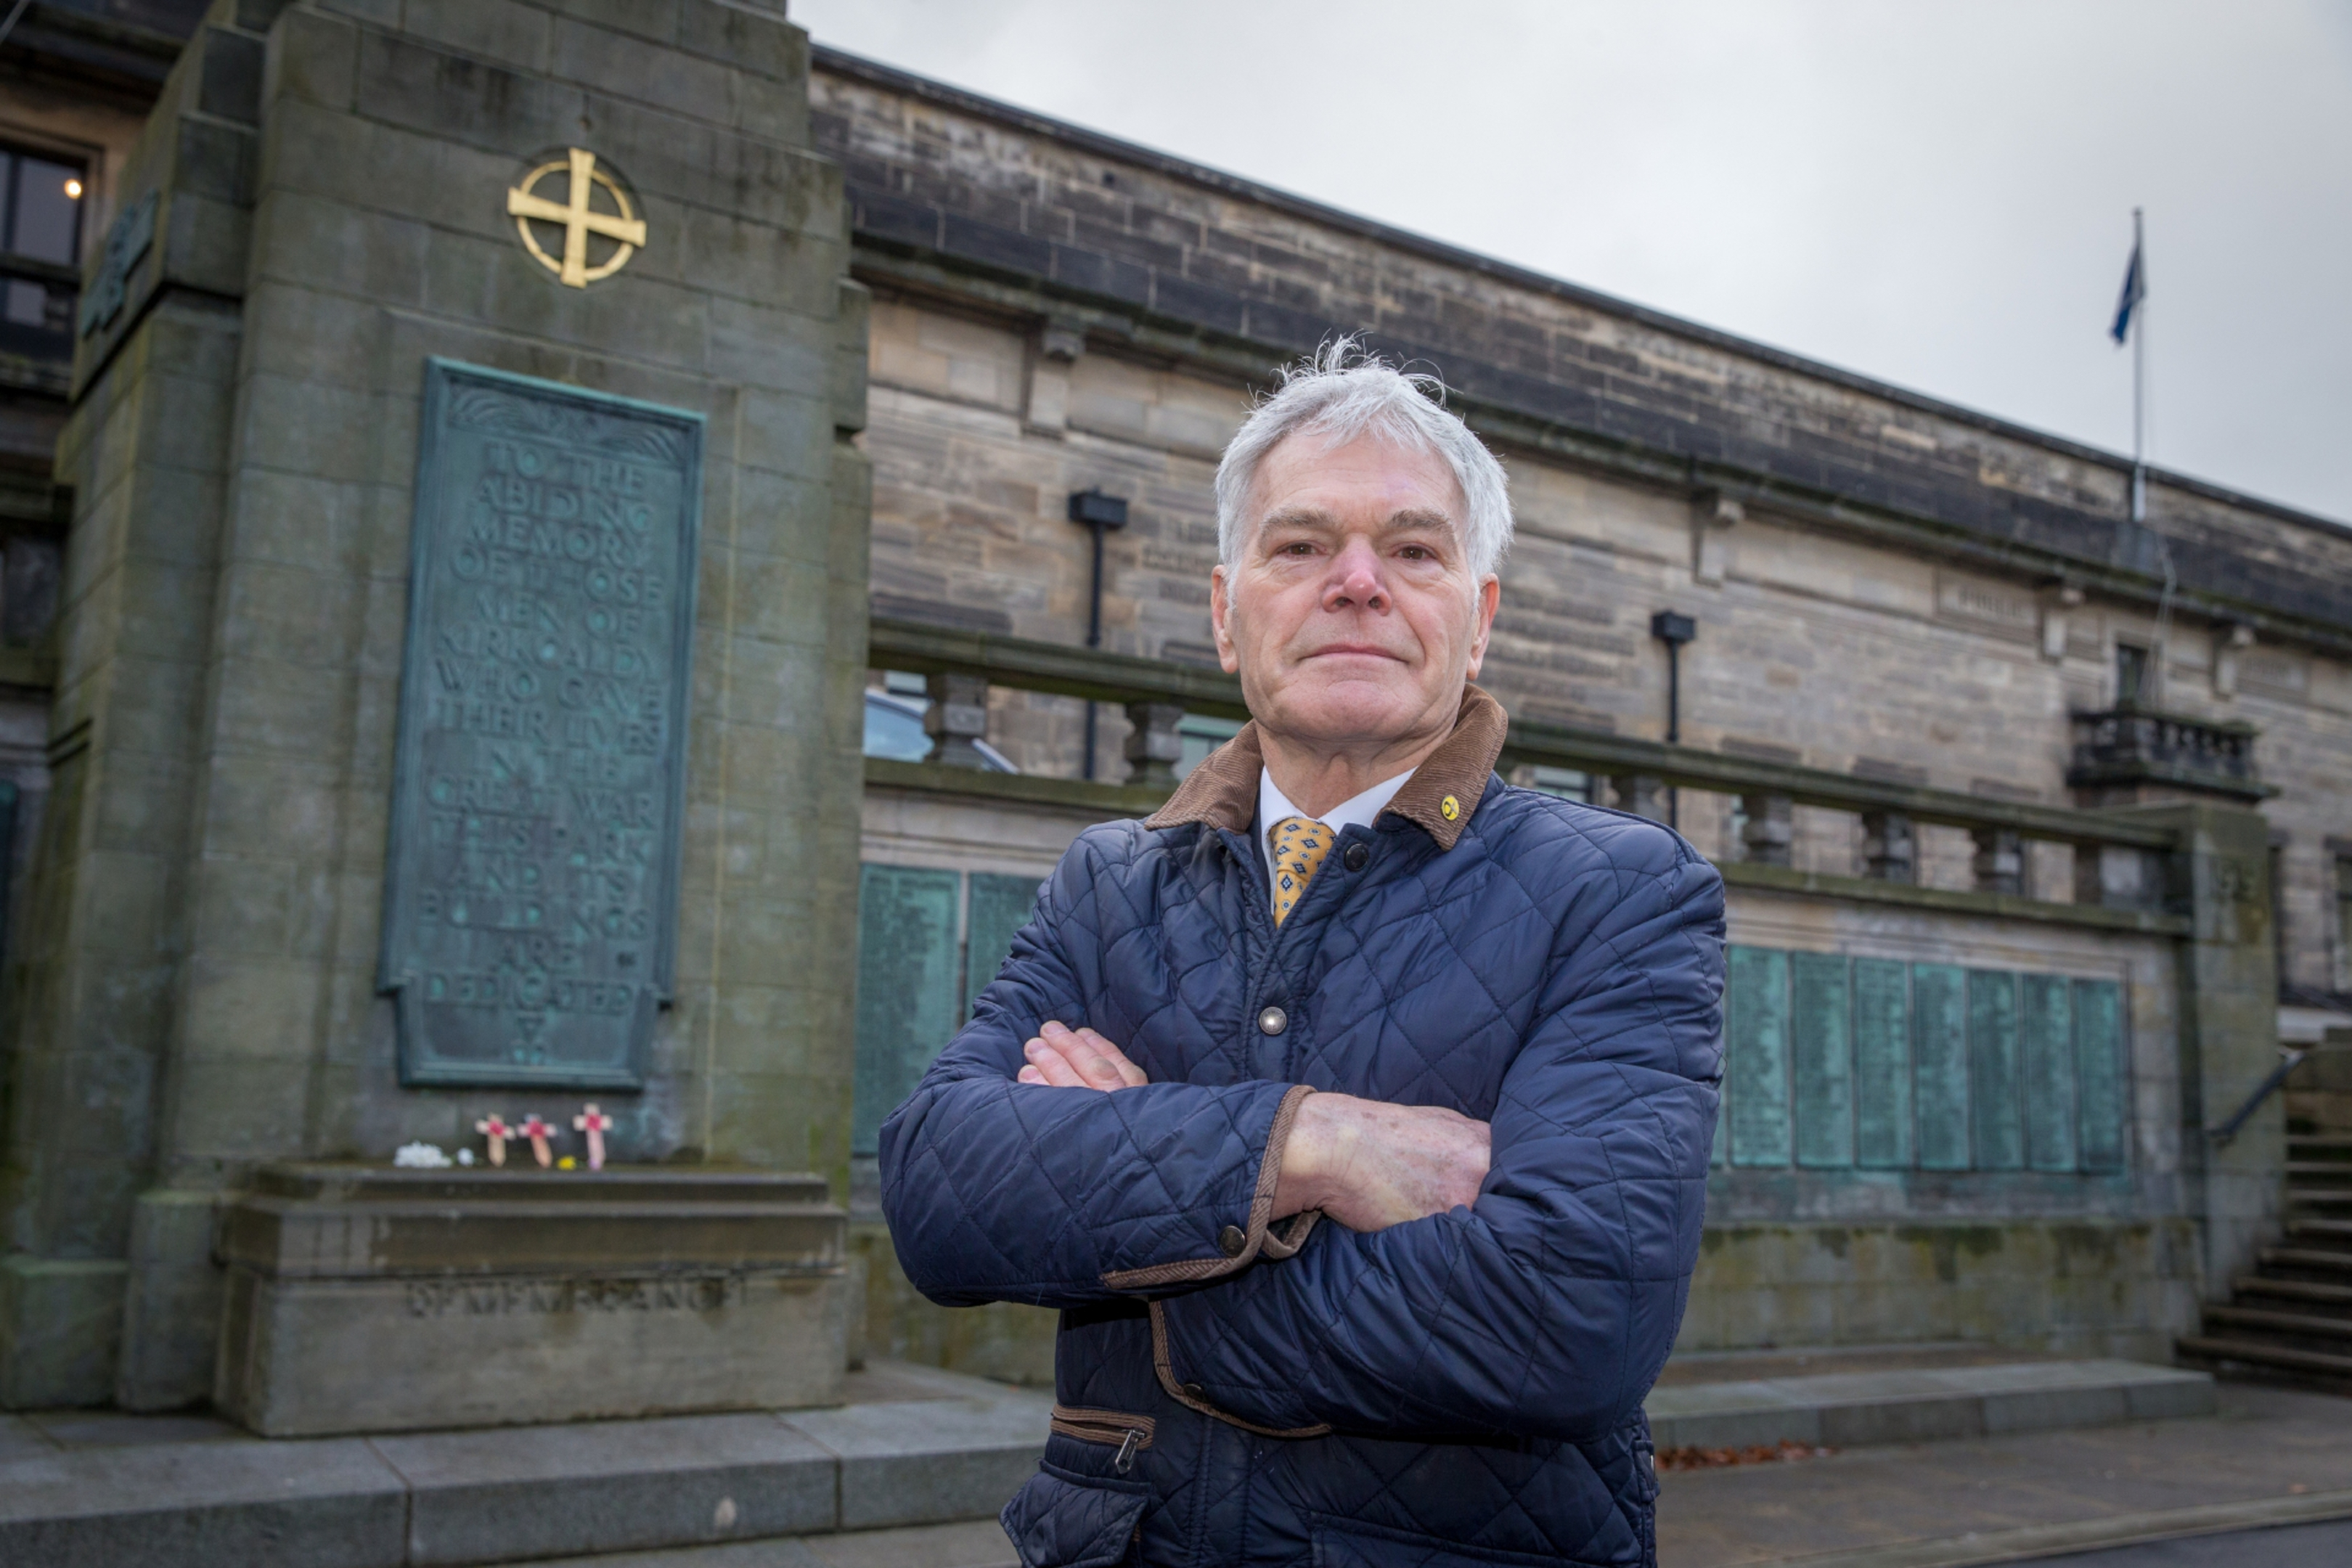 Fife's armed forces champion, Rod Cavanagh, has hit out at vandalism at Kirkcaldy war memorial.